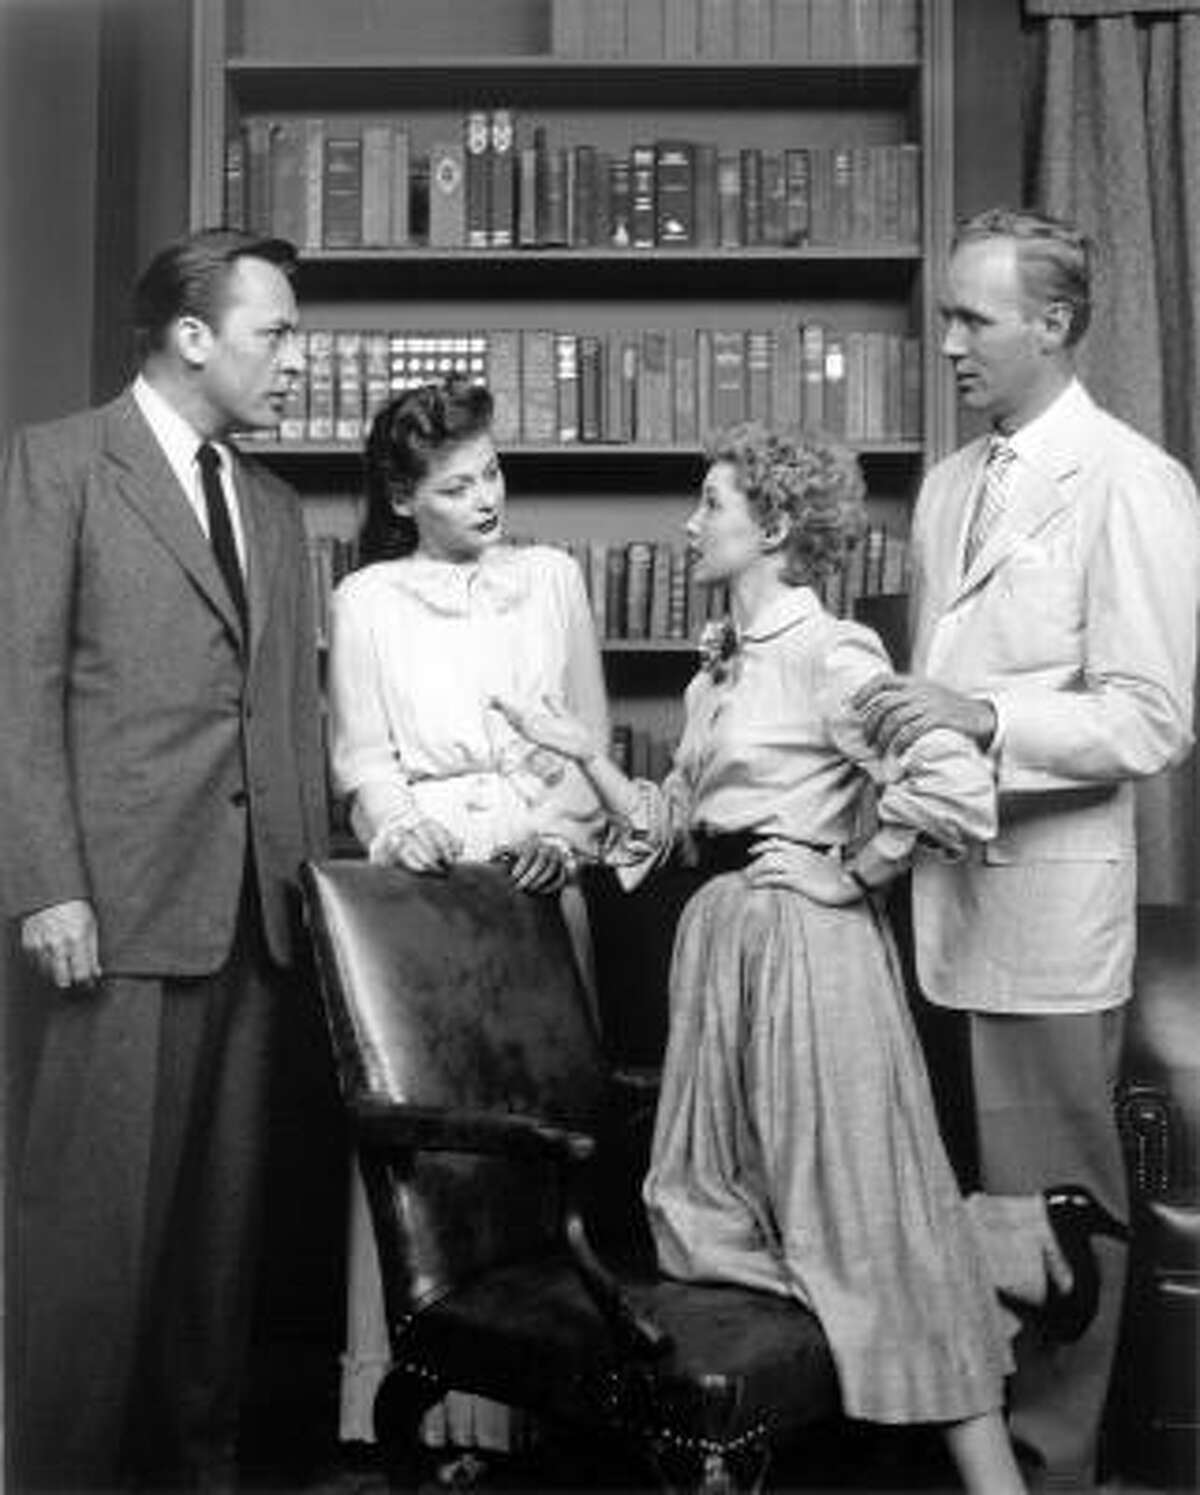 From left, Herb Nelson, Ellen Demming, Susan Douglas, and Lyle Sudrow appeared in the premiere TV broadcast of Guiding Light on June 30, 1952.